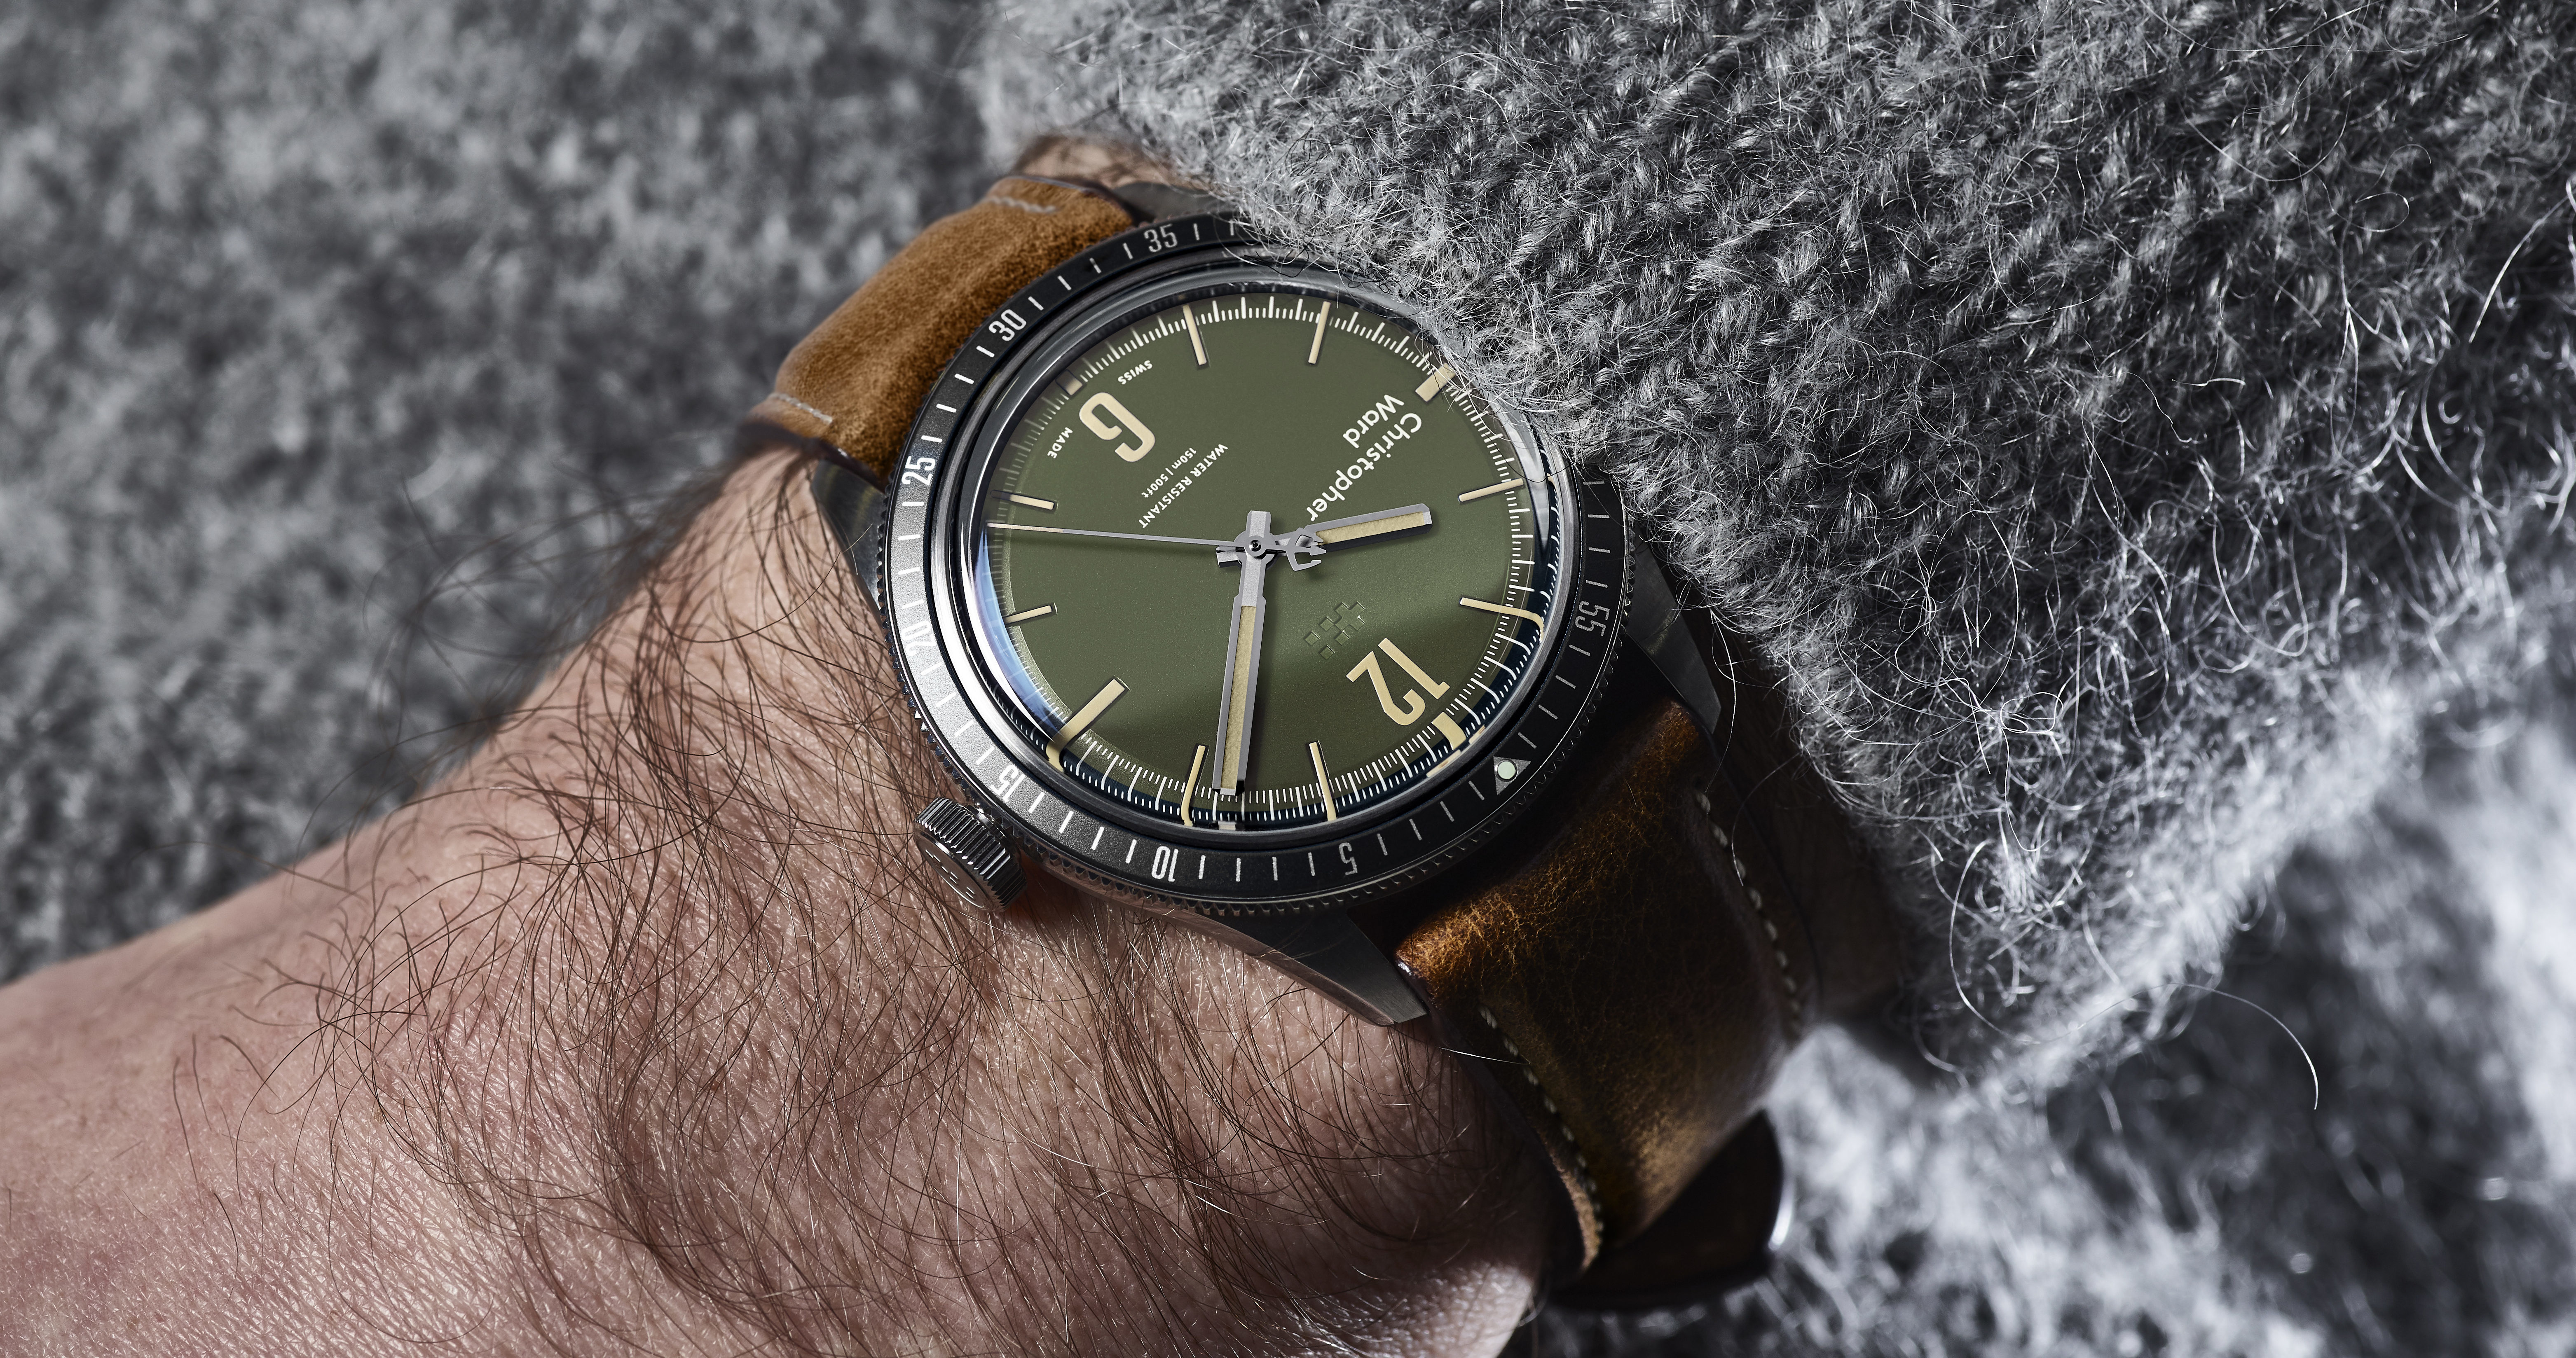 New Kit: C65 Trident Diver watch in khaki